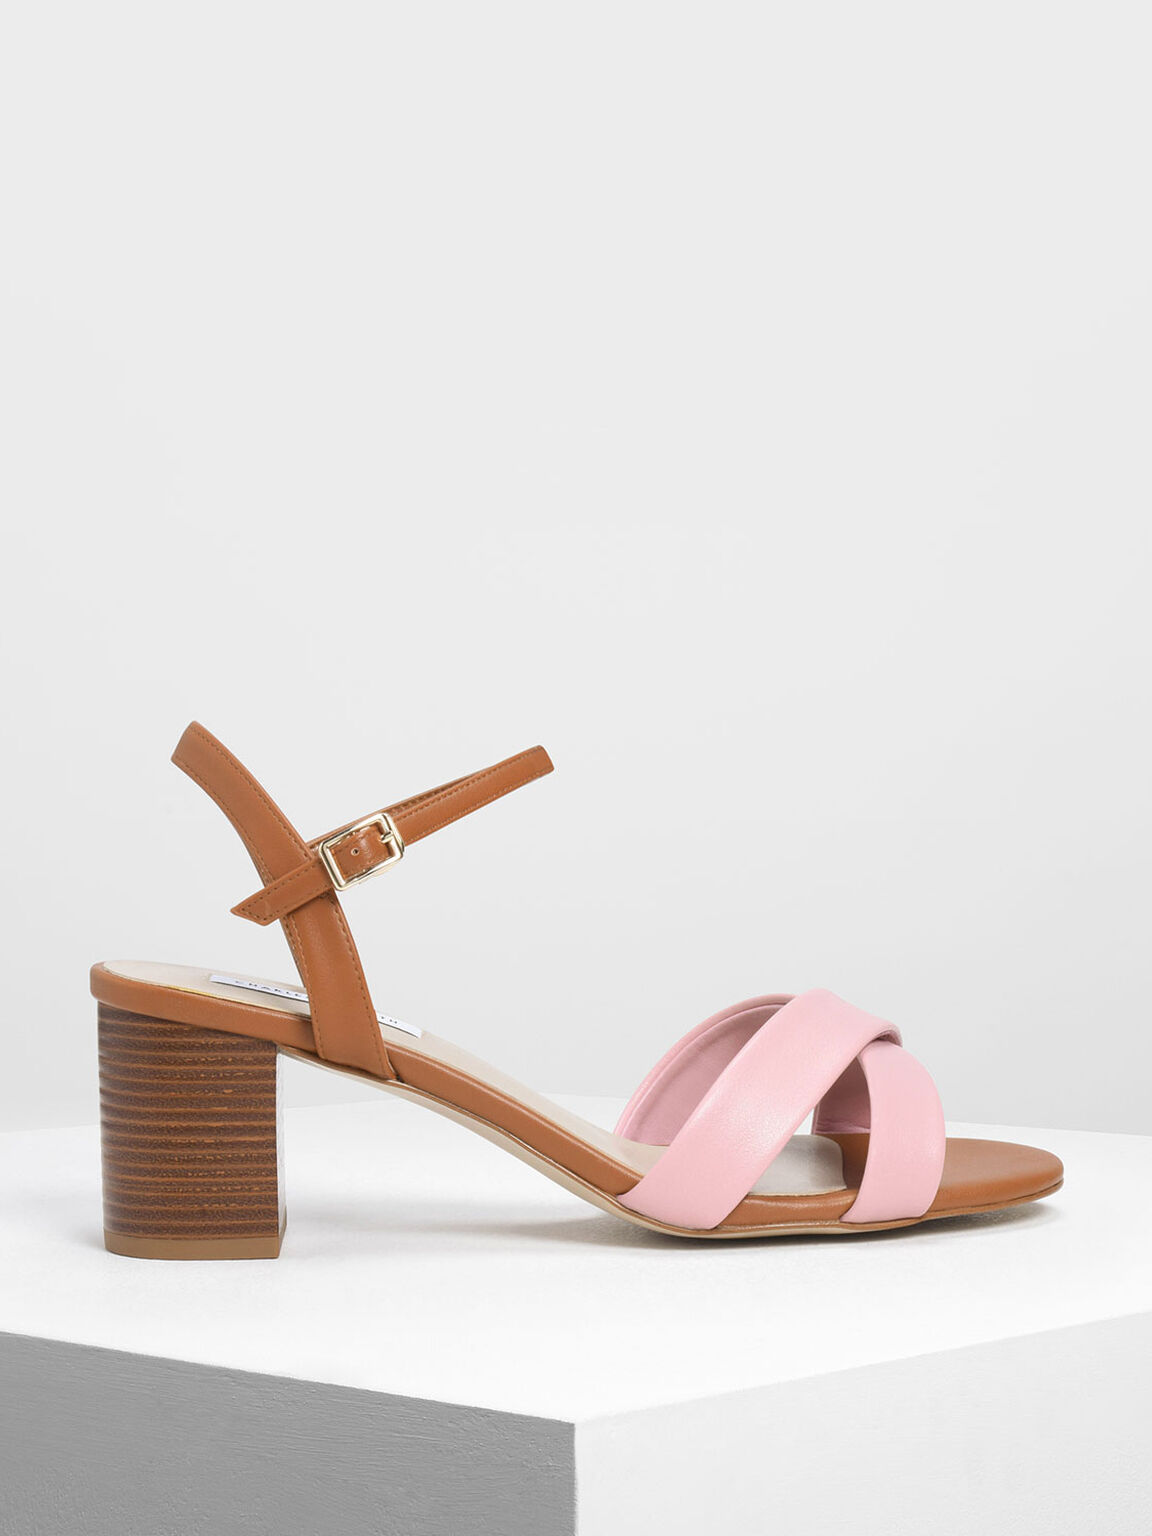 Criss-Cross Two Tone Block Heel Sandals, Pink, hi-res